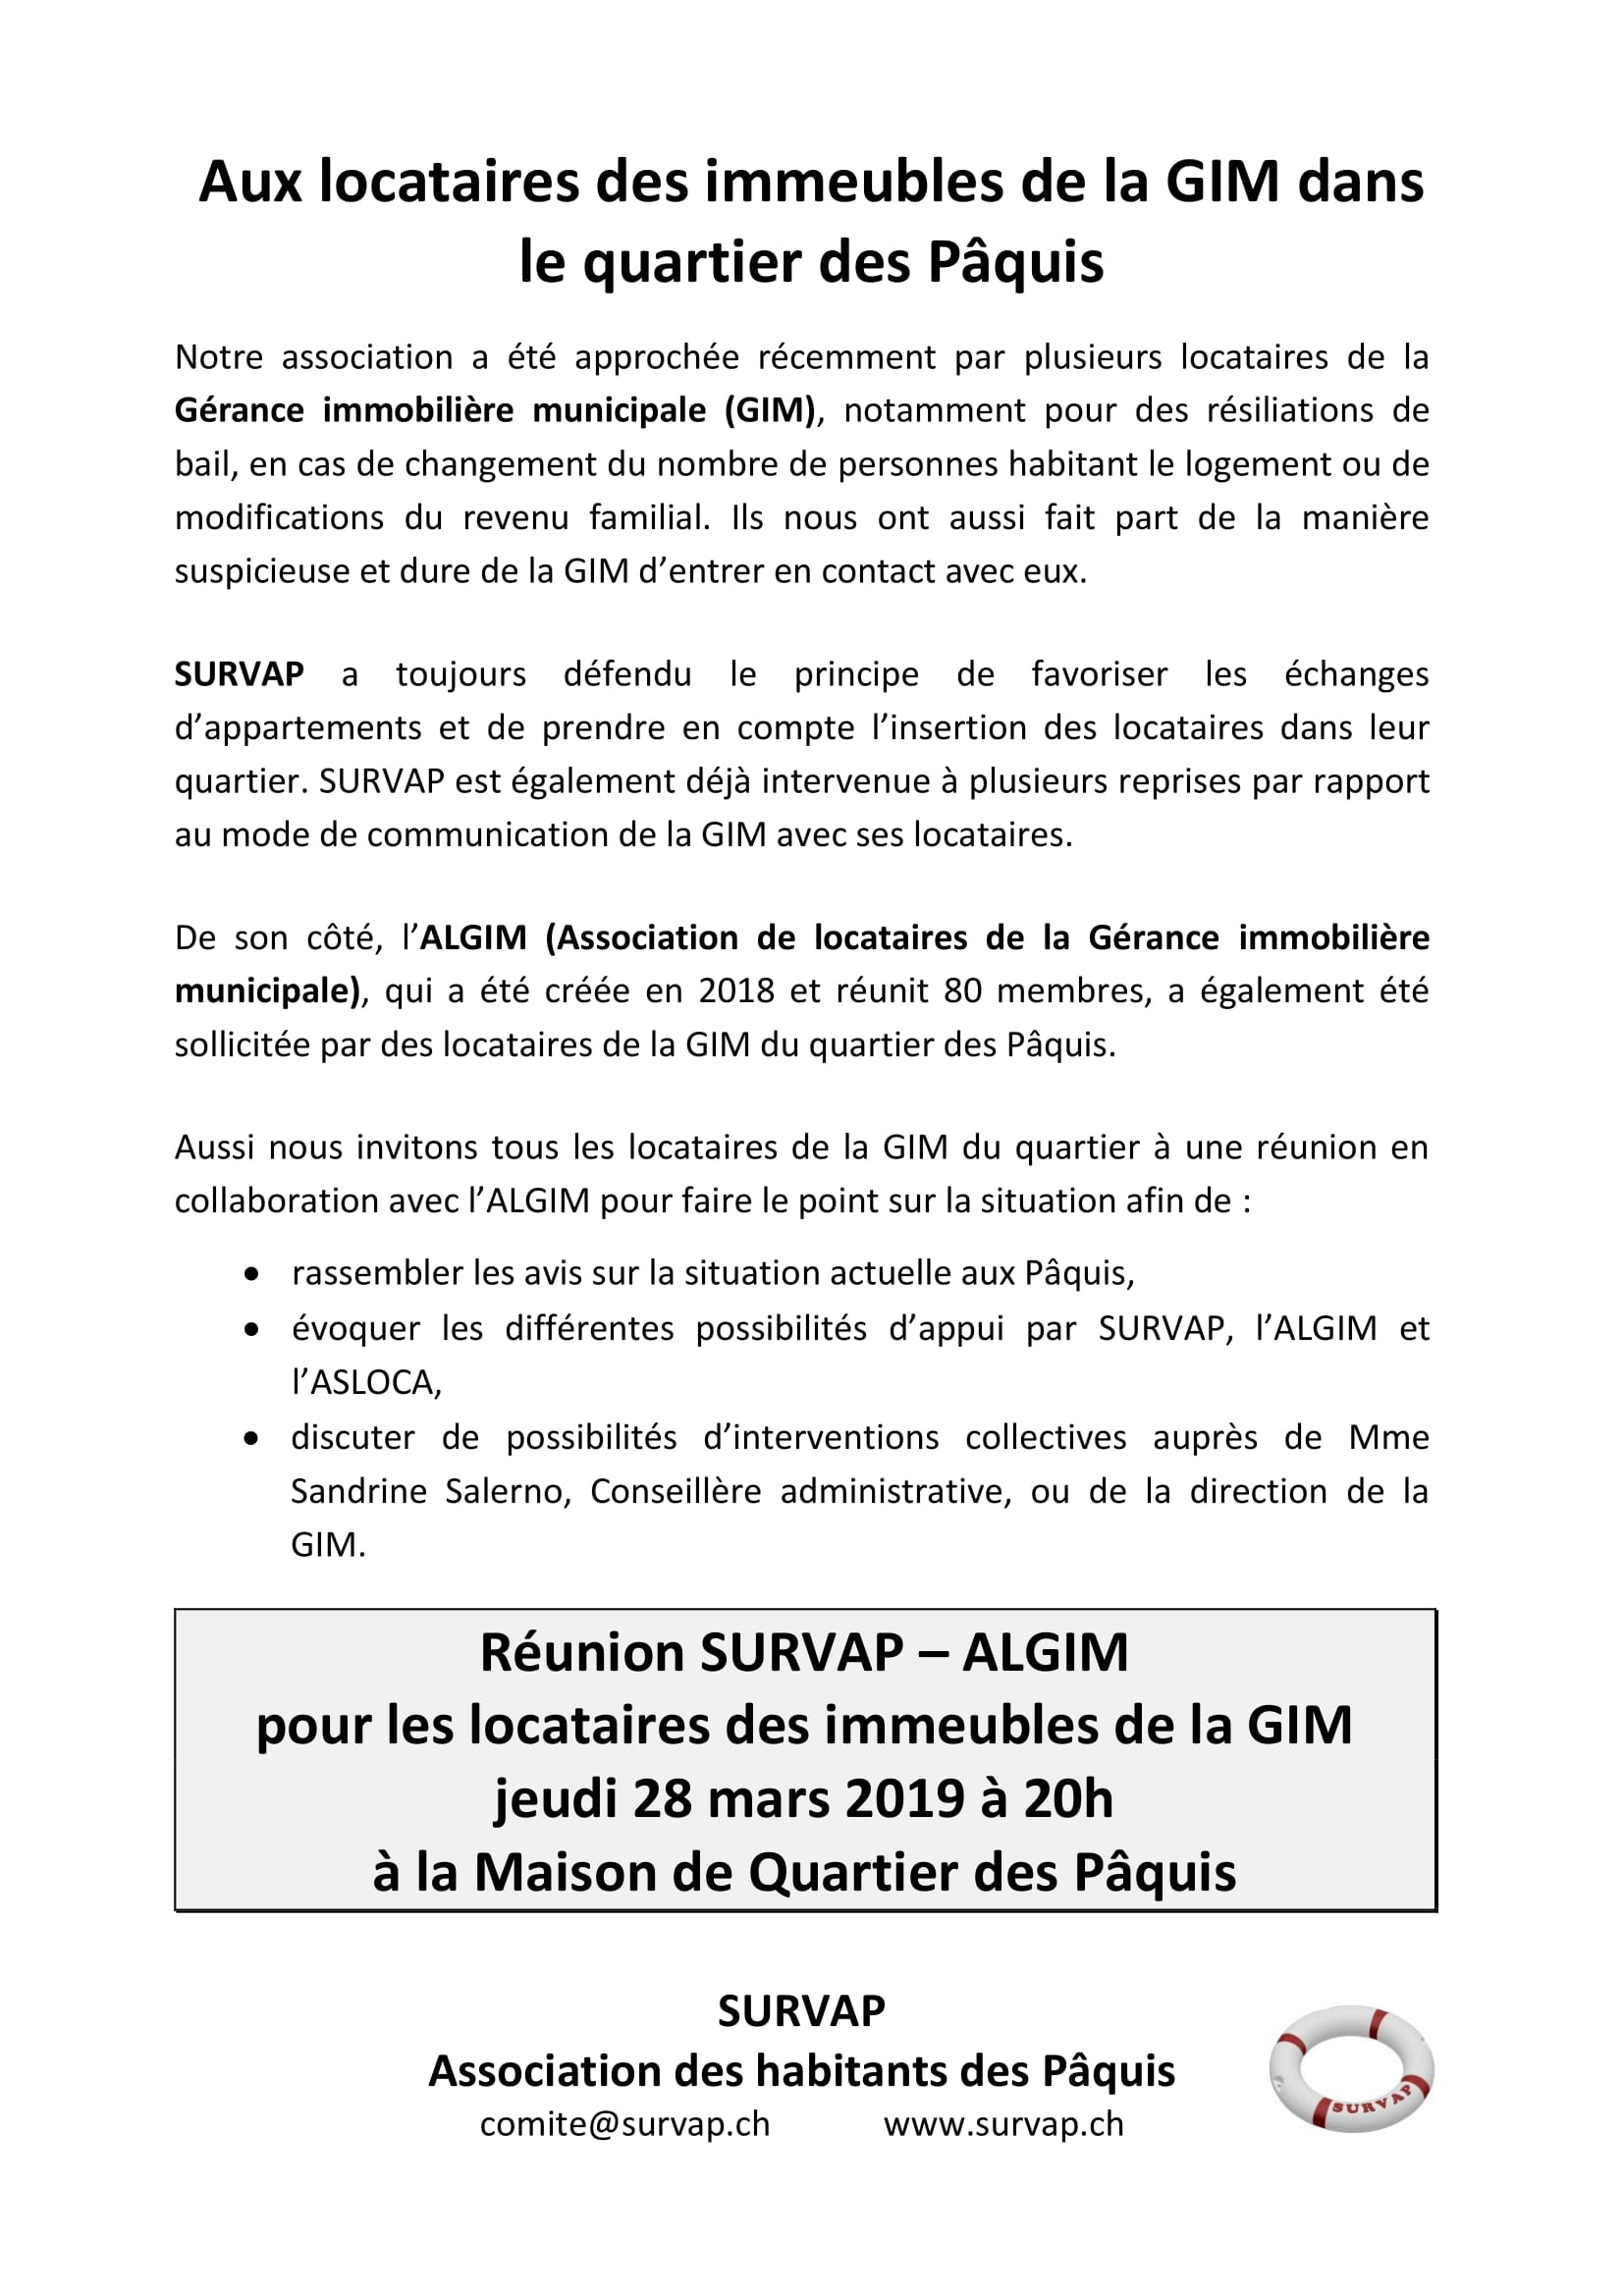 Flyer_SURVAP_ALGIM_28Mars